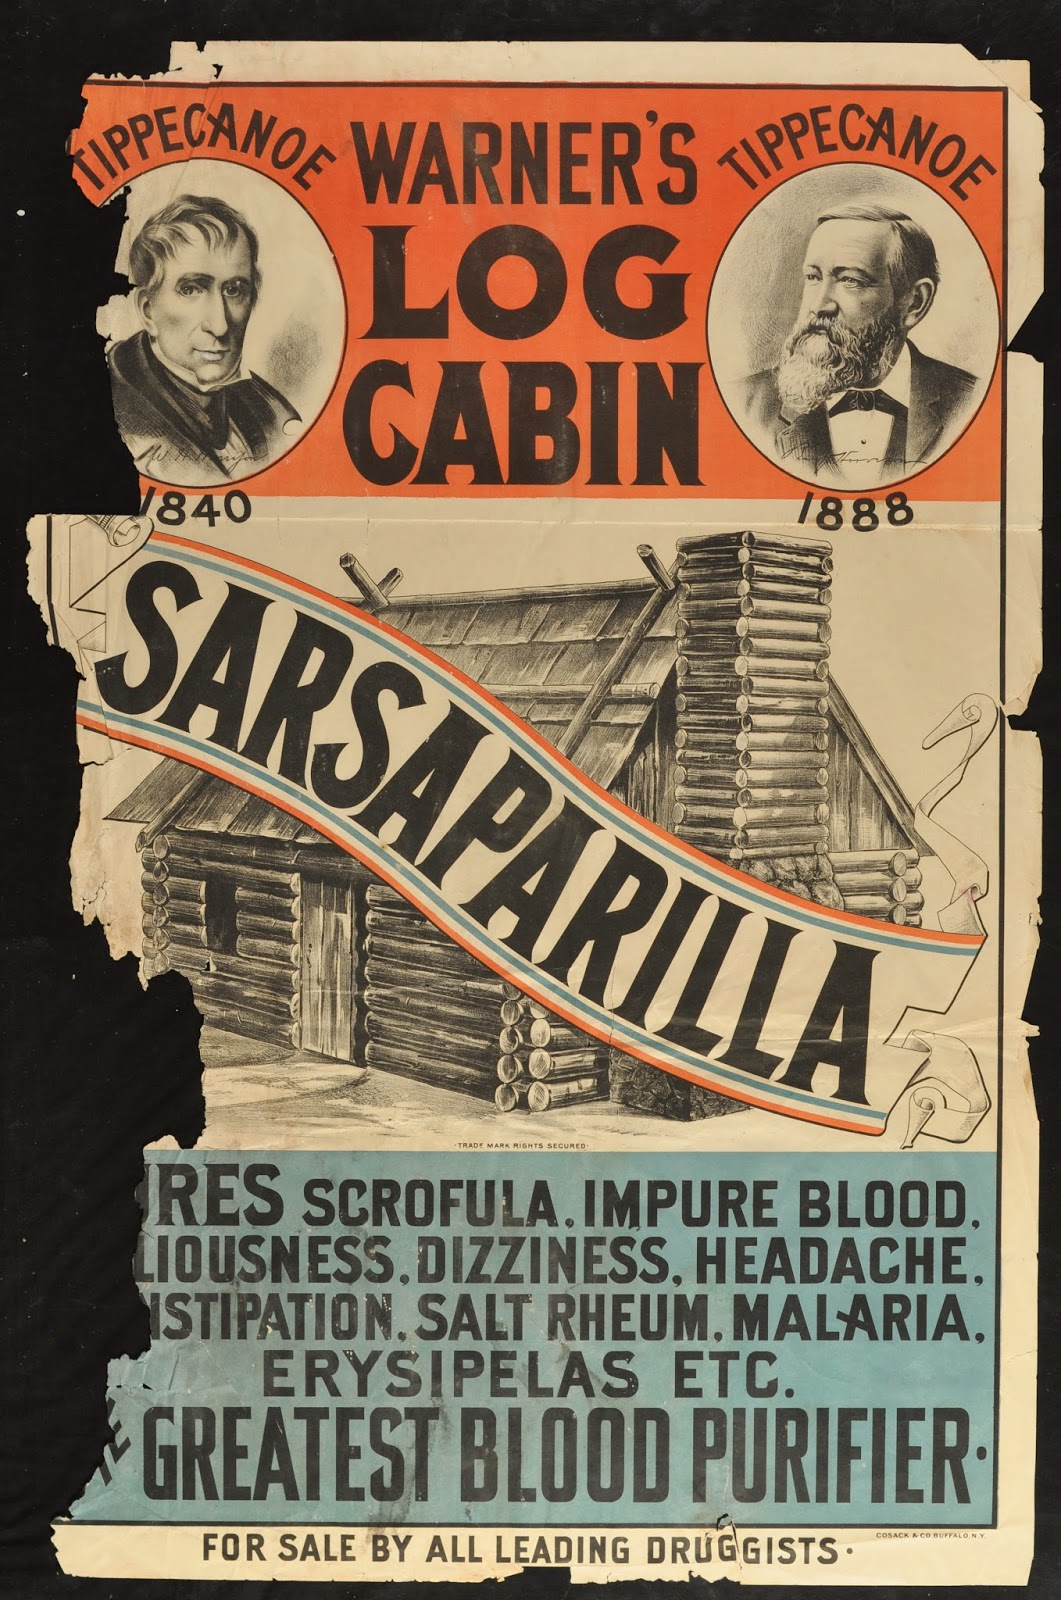 Poster Mountain: How Do You Pronounce Sarsaparilla? - photo#36